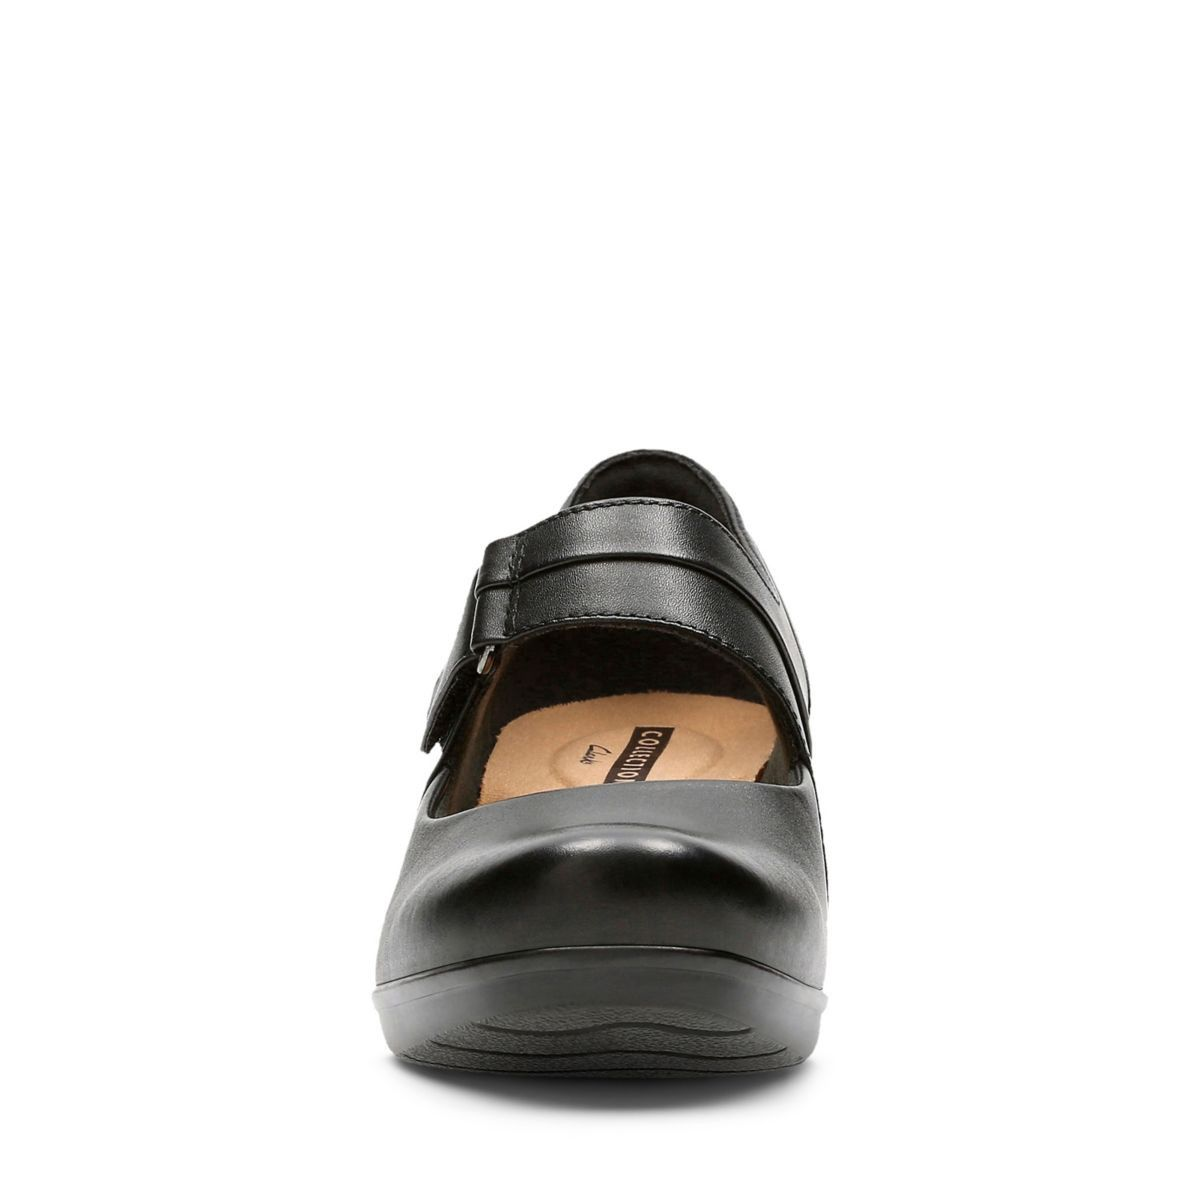 c629f83dd58a Clarks Emslie Lulin - Womens Shoes Black Leather 8.5 E (Wide) Out Of Stock